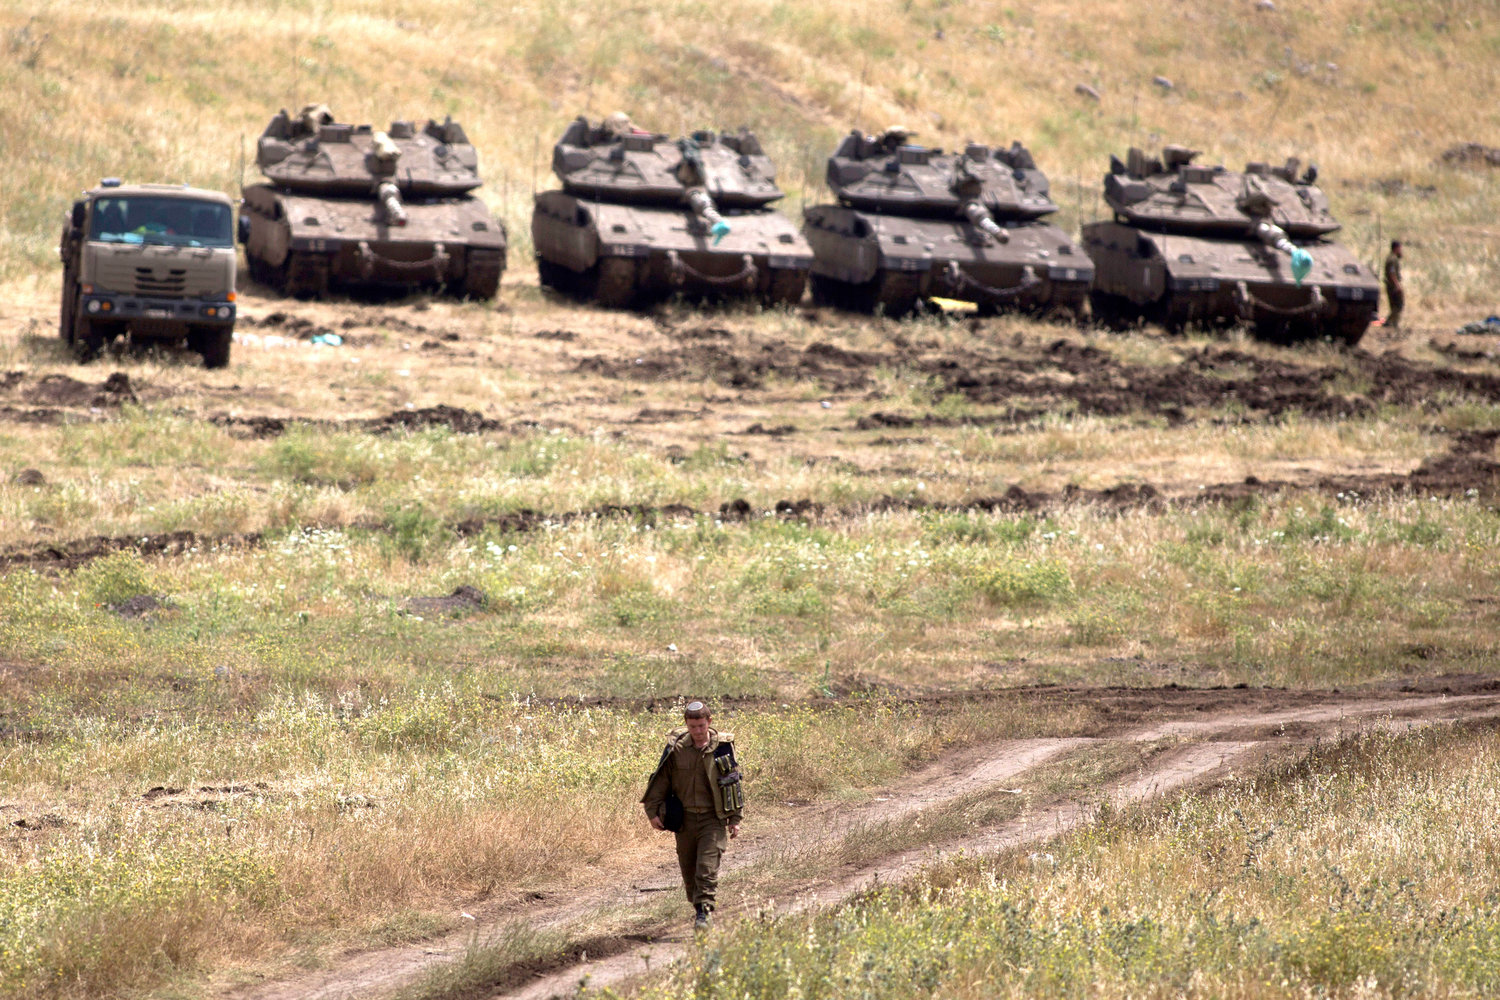 An Israeli soldier walks next to Merkava tanks deployed near the Israeli-Syrian border on May 10, 2018 in the Israeli-annexed Golan Heights.